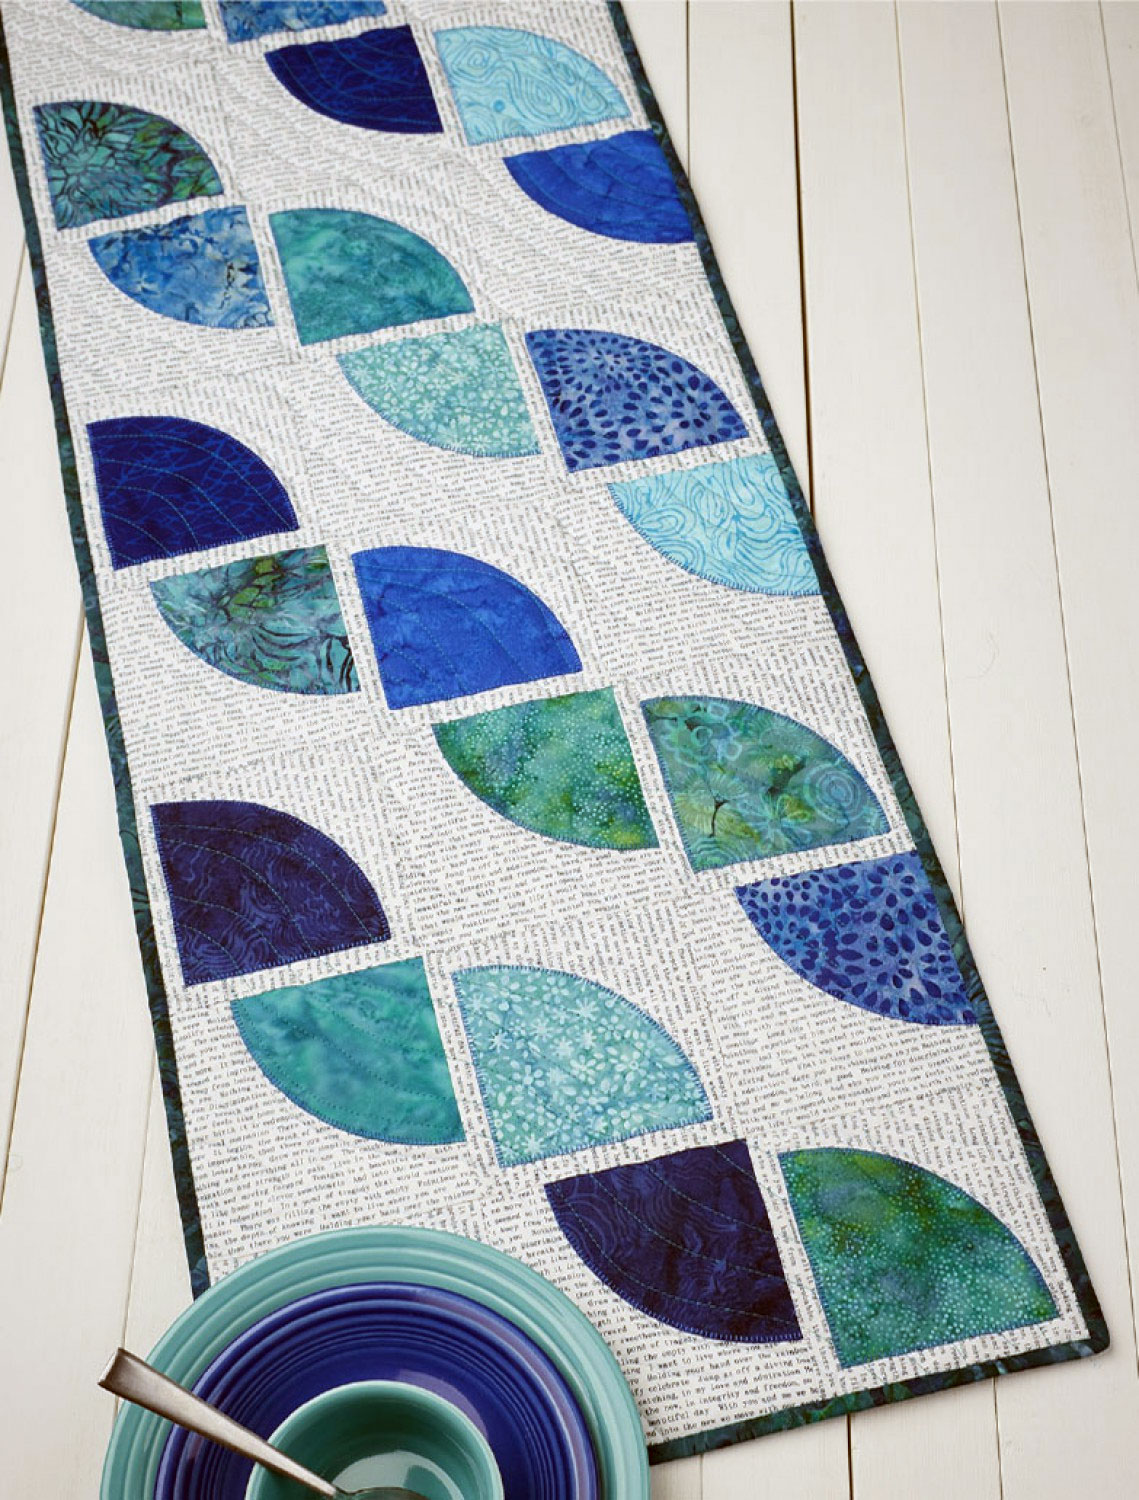 Drunkards-path-table-runner-sewing-pattern-Cut-Loose-Press-1